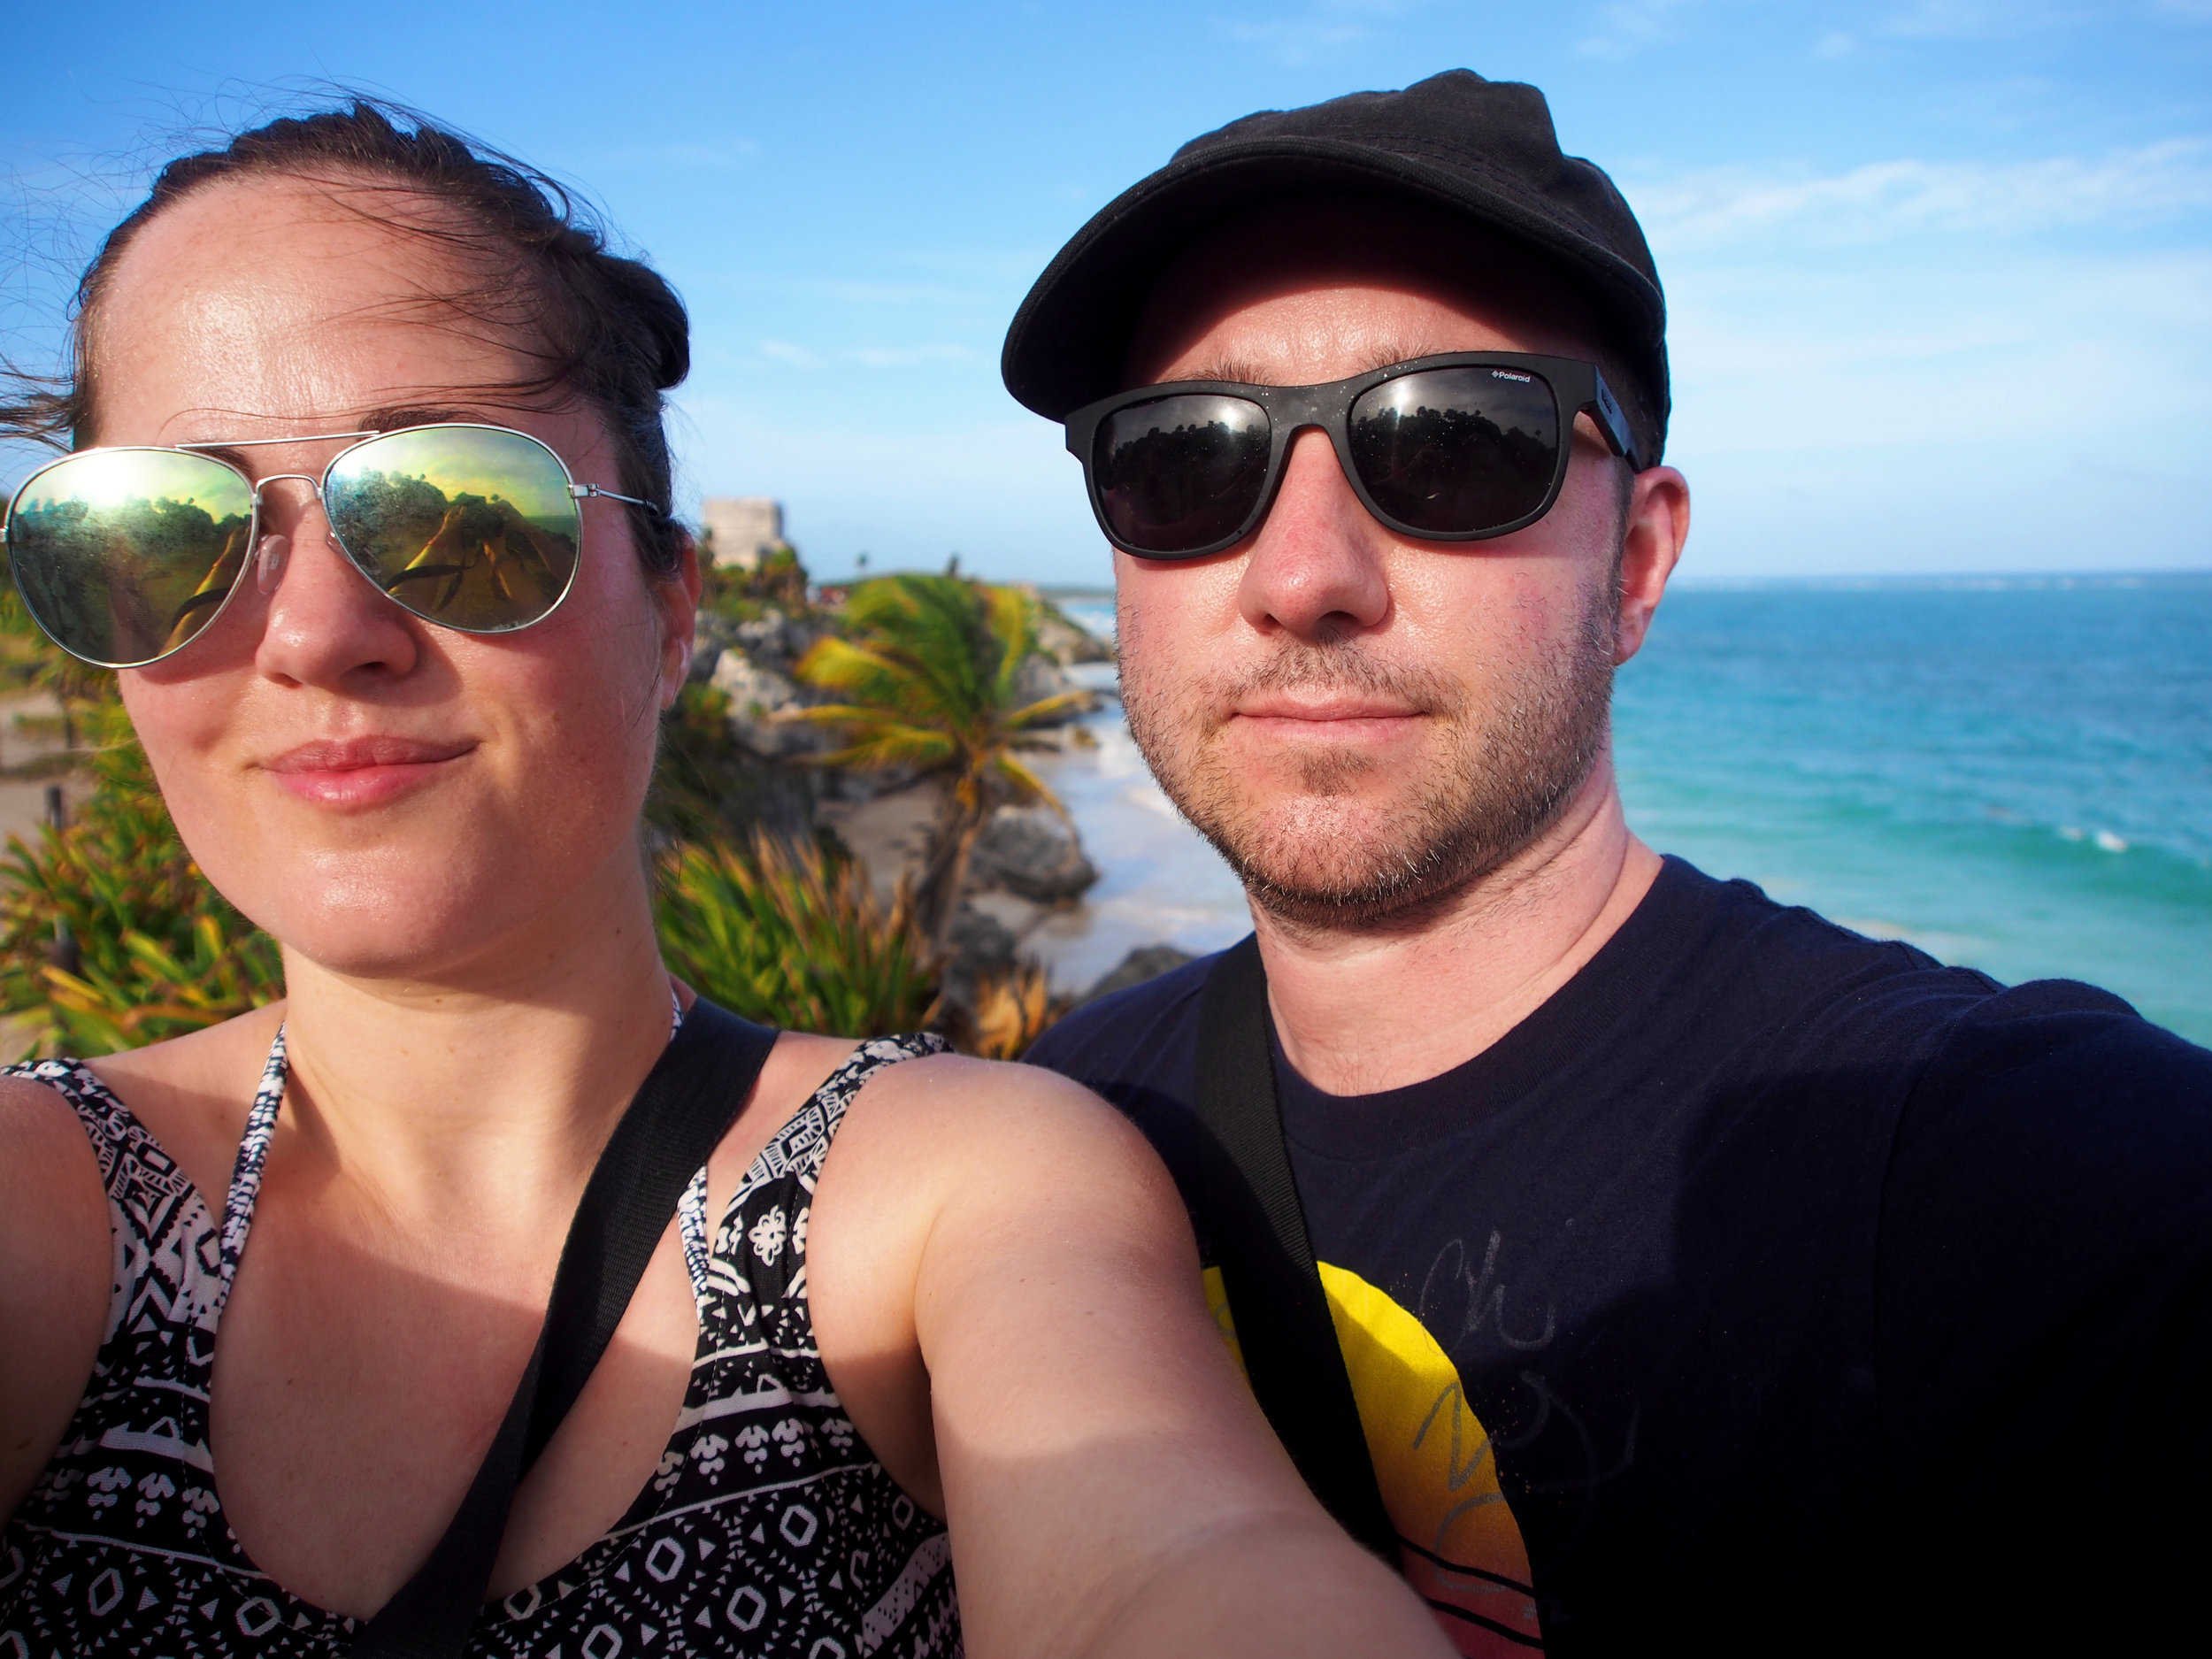 Selfie at the tulum ruins